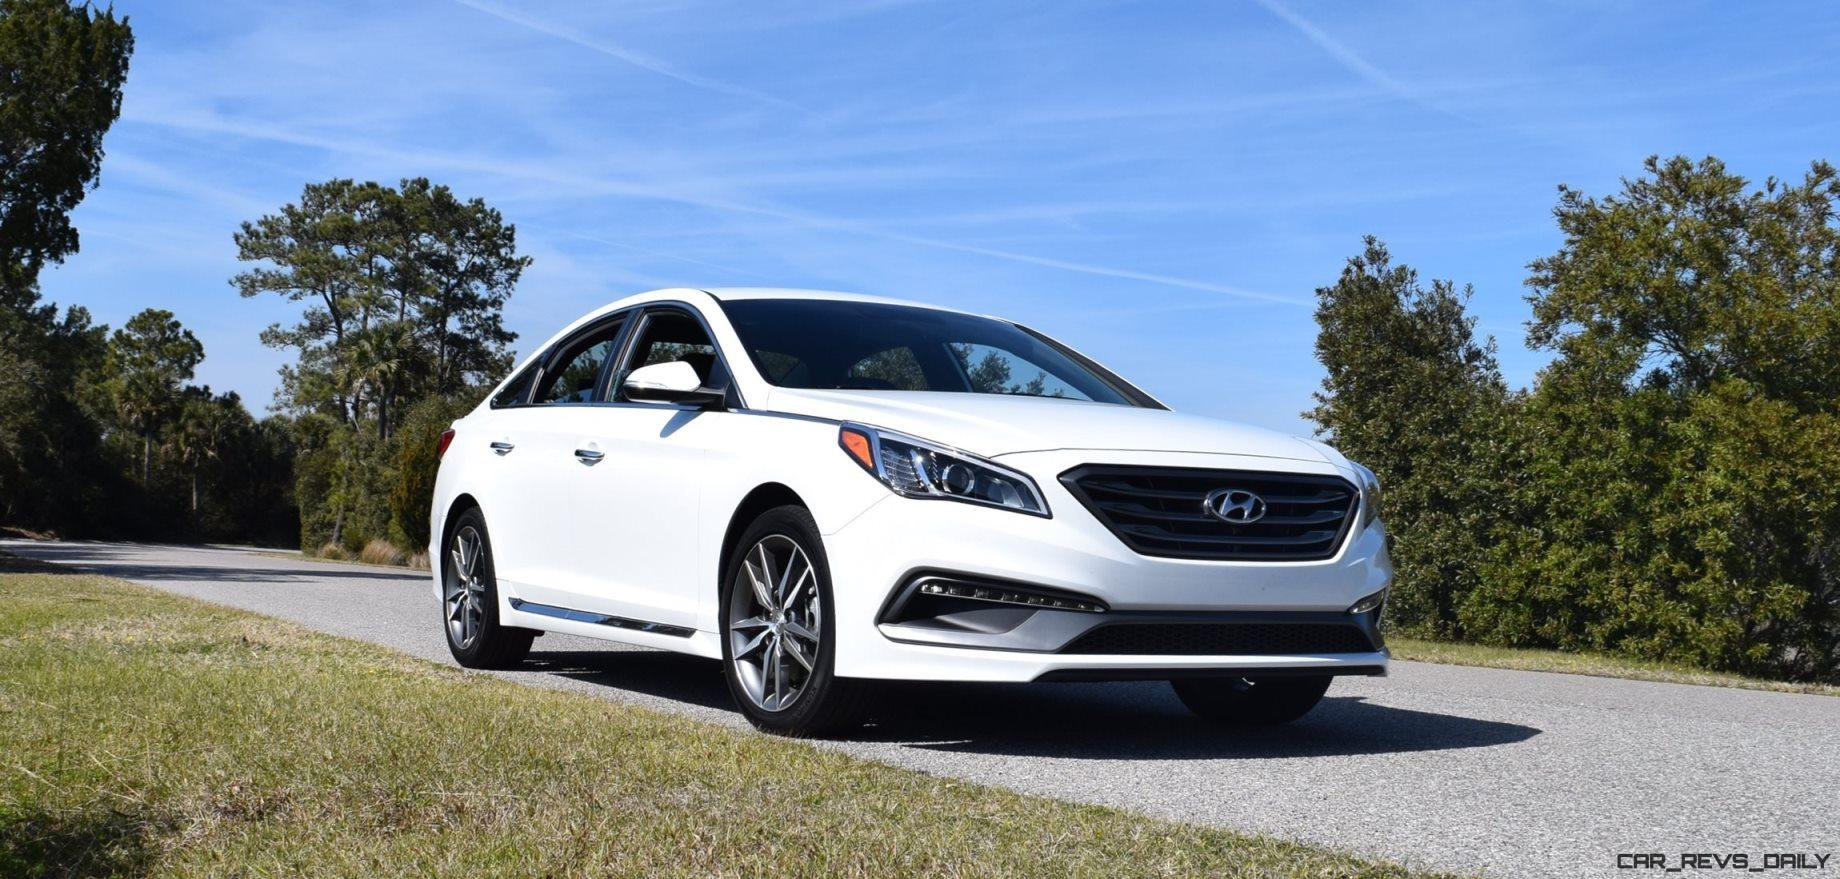 2016 hyundai sonata sport 2 0t quartz white 32. Black Bedroom Furniture Sets. Home Design Ideas